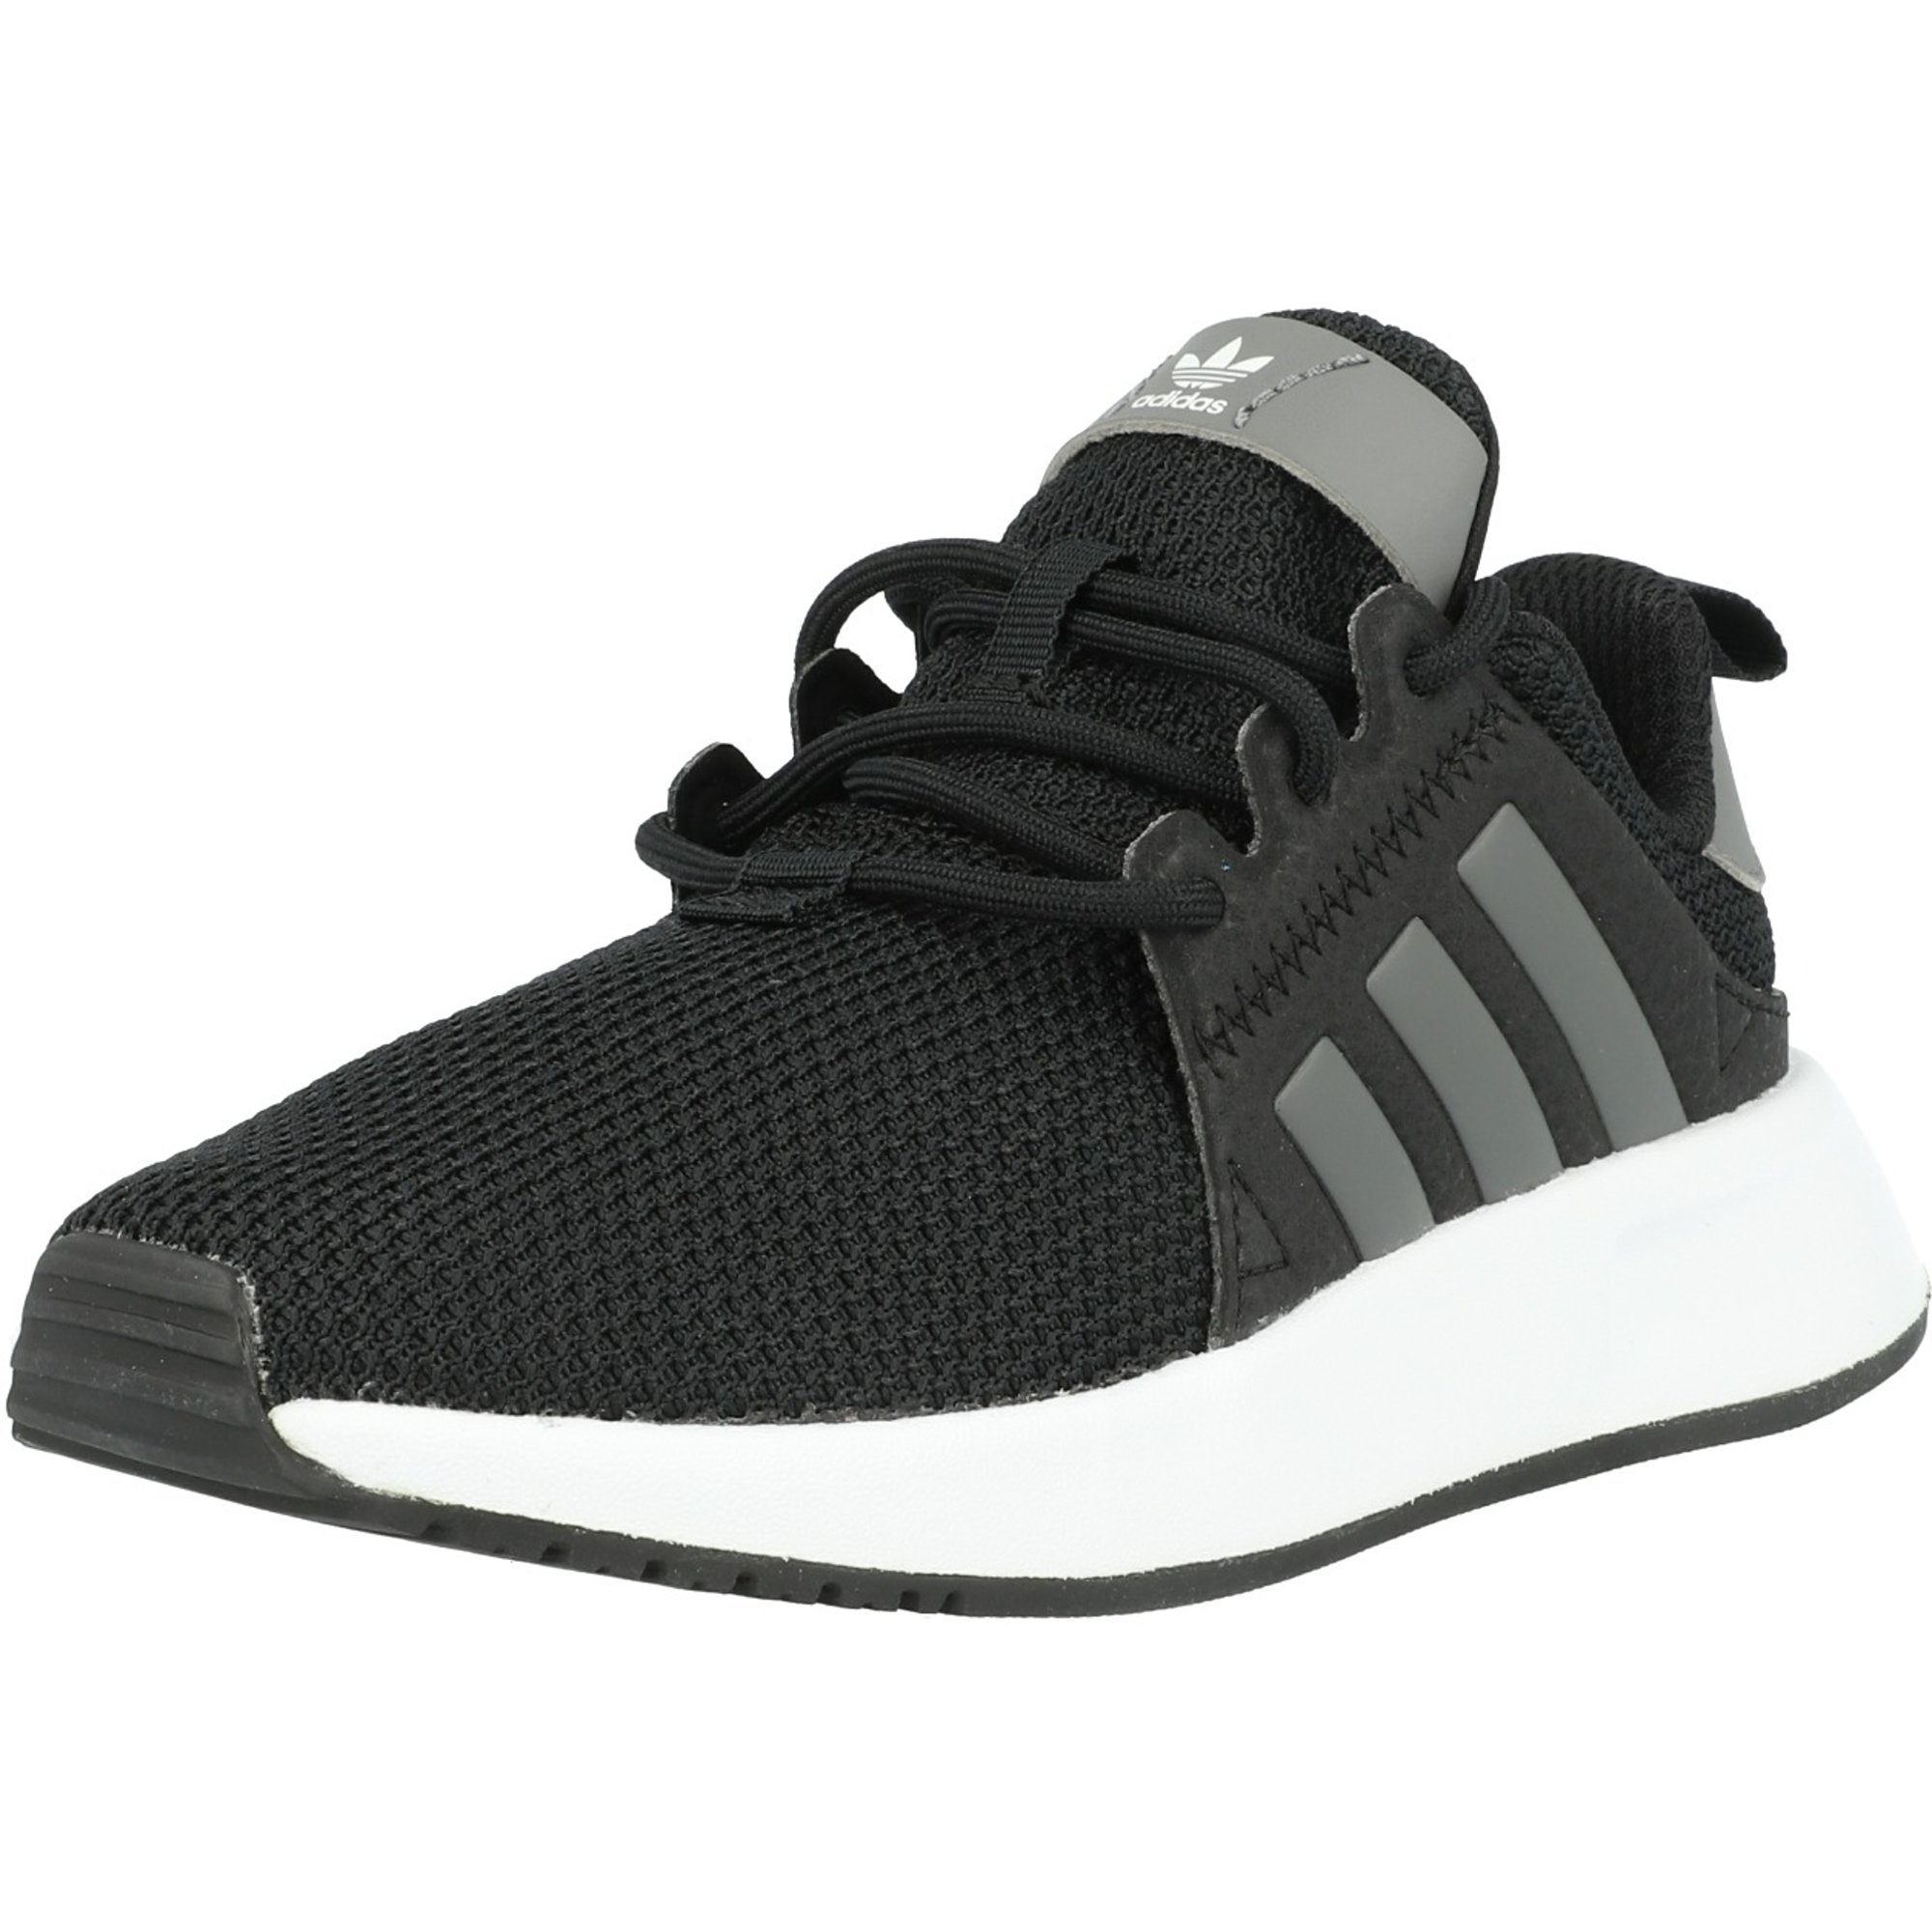 white adidas noir white and adidas and and noir white formateurs noir formateurs nO0Pwk